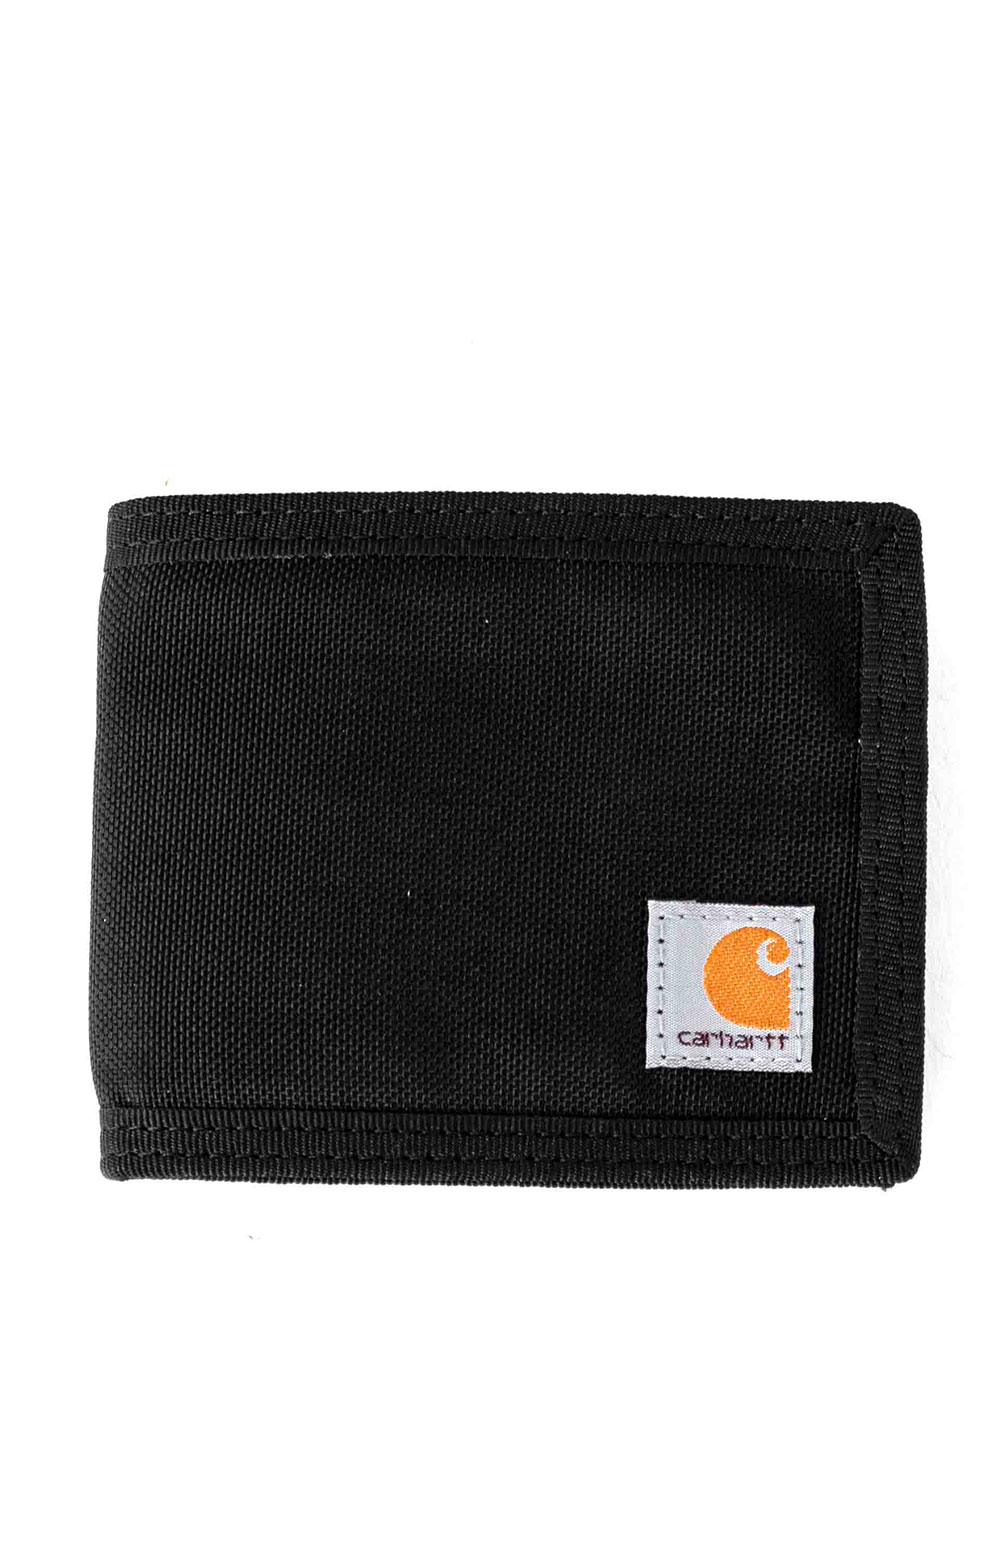 (B000023200199) Extremes Passcase Wallet - Black